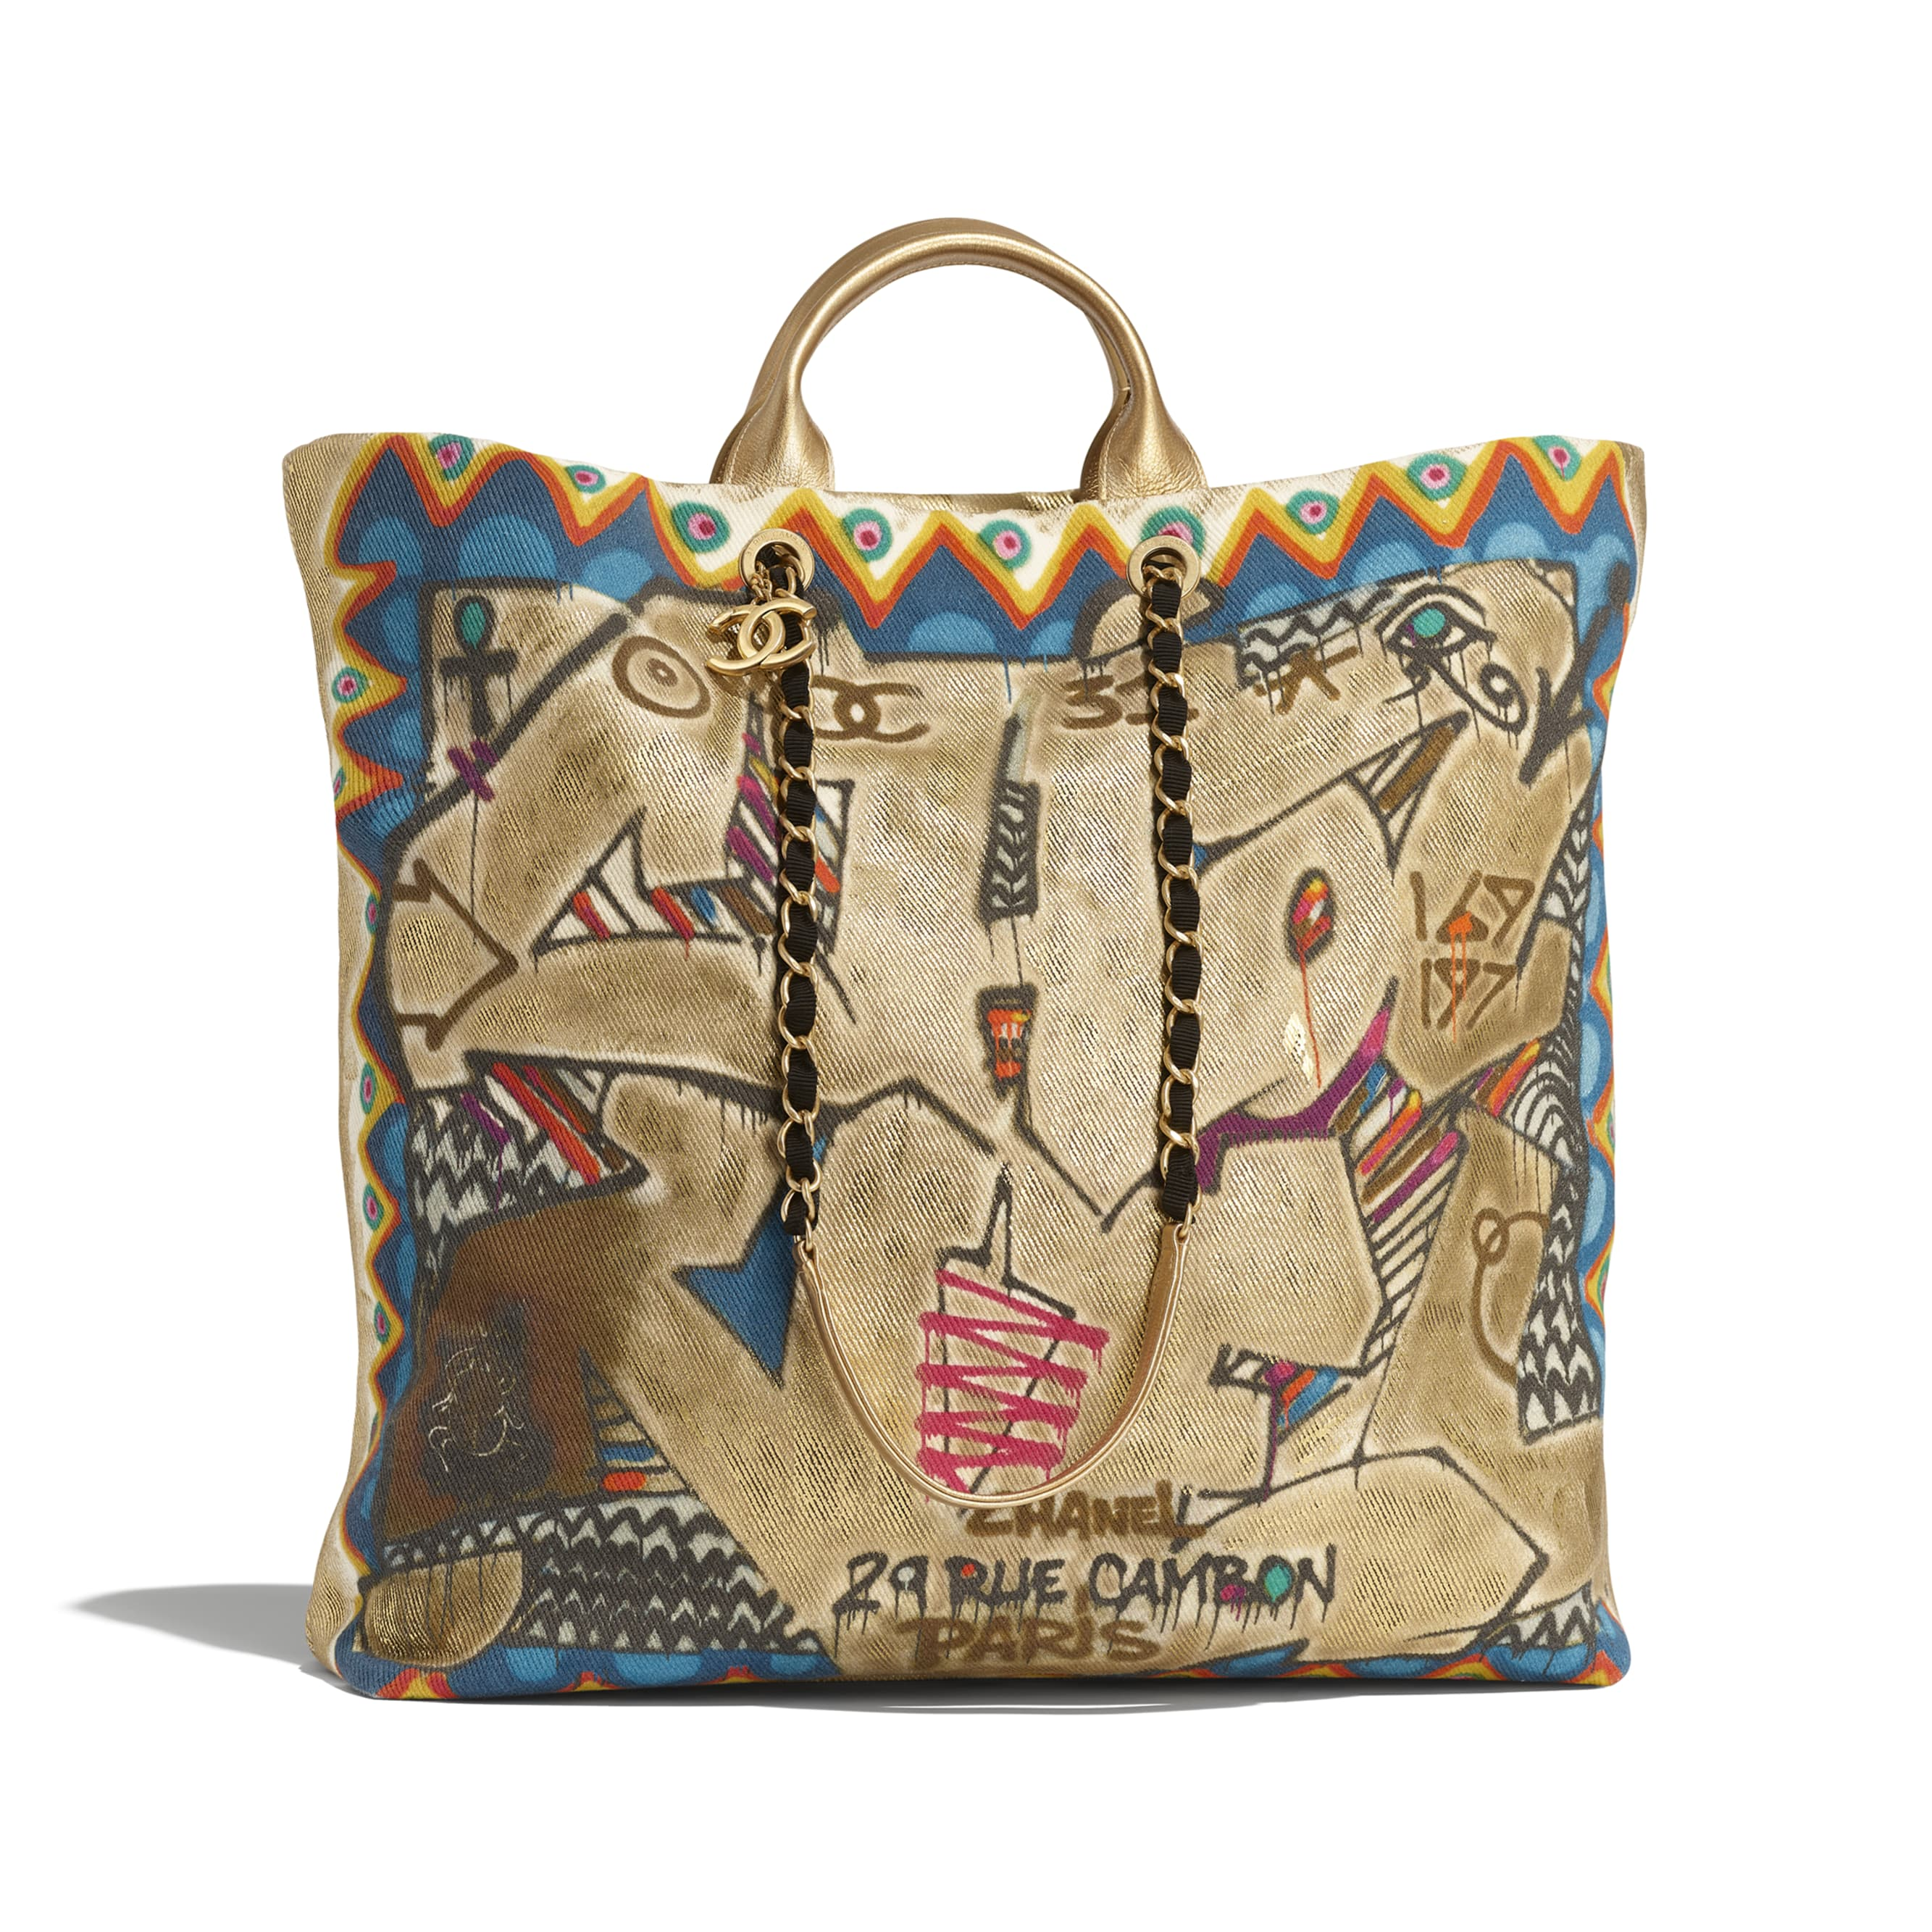 Maxi Shopping Bag - Multicolor - Calfskin, Cotton & Gold-Tone Metal - Default view - see standard sized version